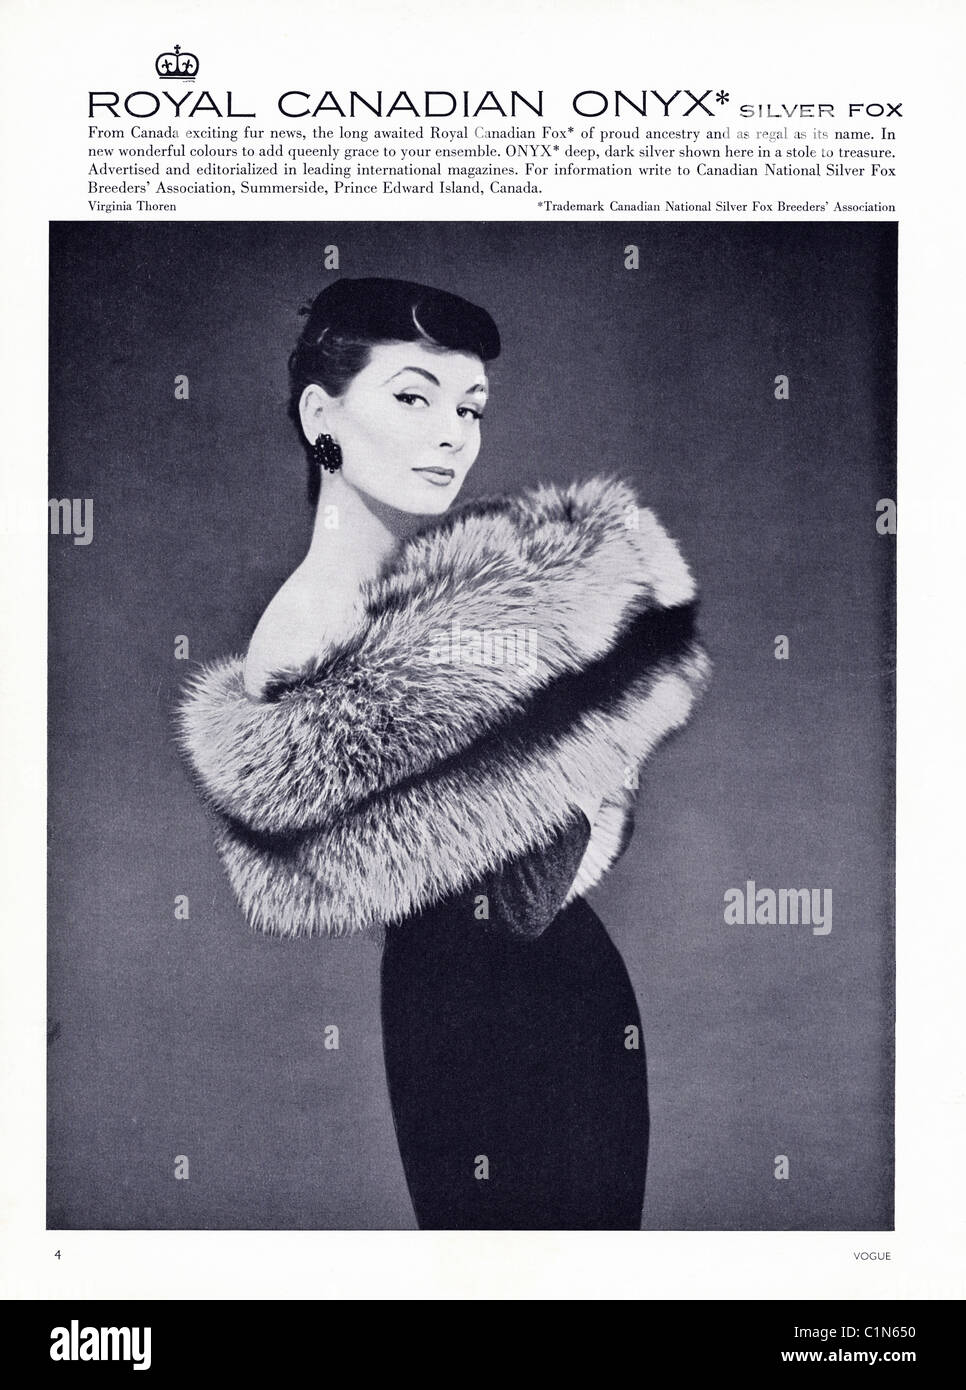 Original full page 1950s advert in women's fashion magazine for ROYAL CANADIAN ONYX SILVER FOX fur - Stock Image